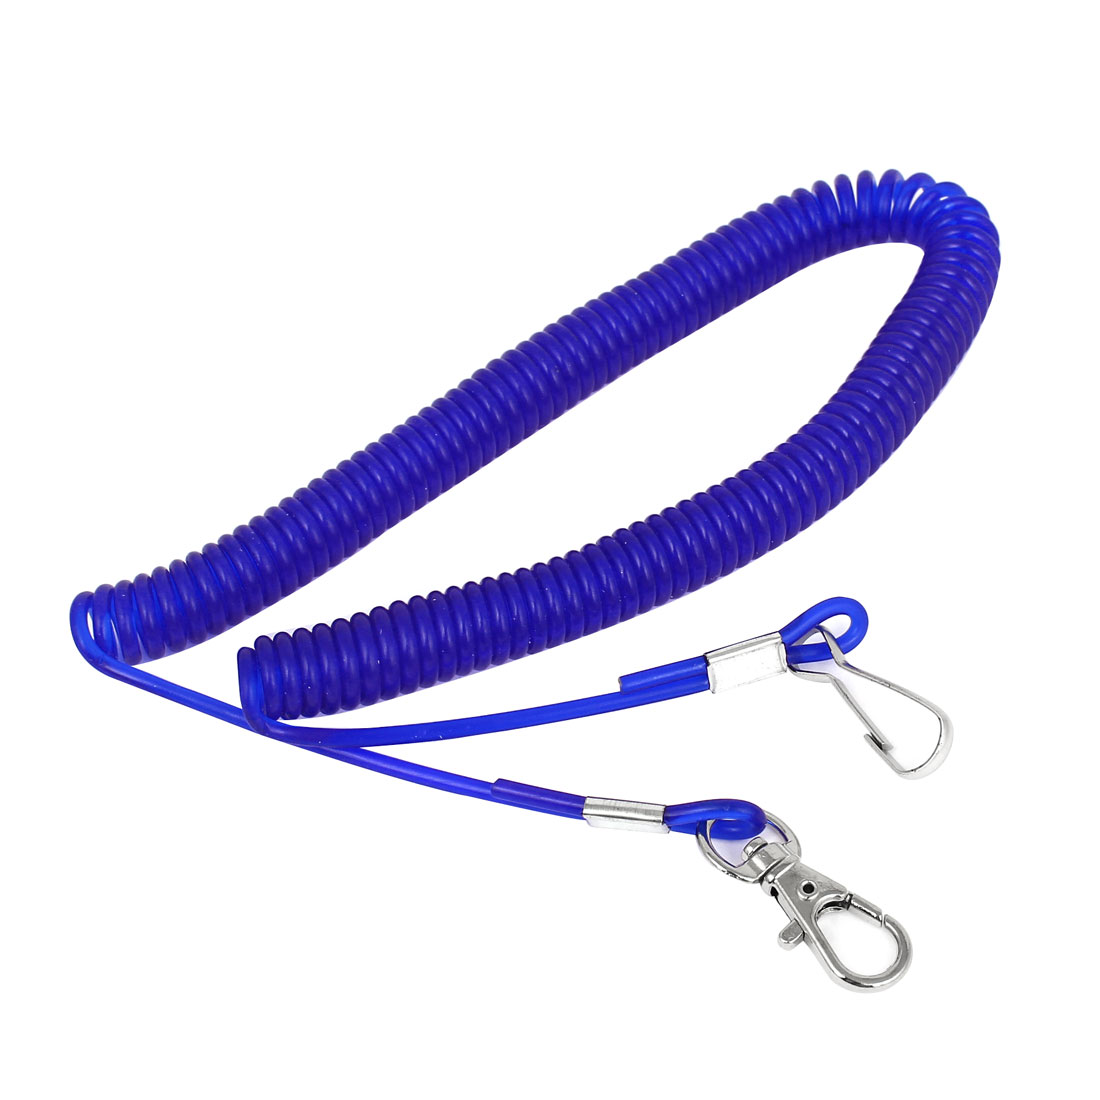 Fishing Rod Safety Lobster Clasp Stretchy Coiled Lanyard Rope Cord Blue 3Meter 10Ft